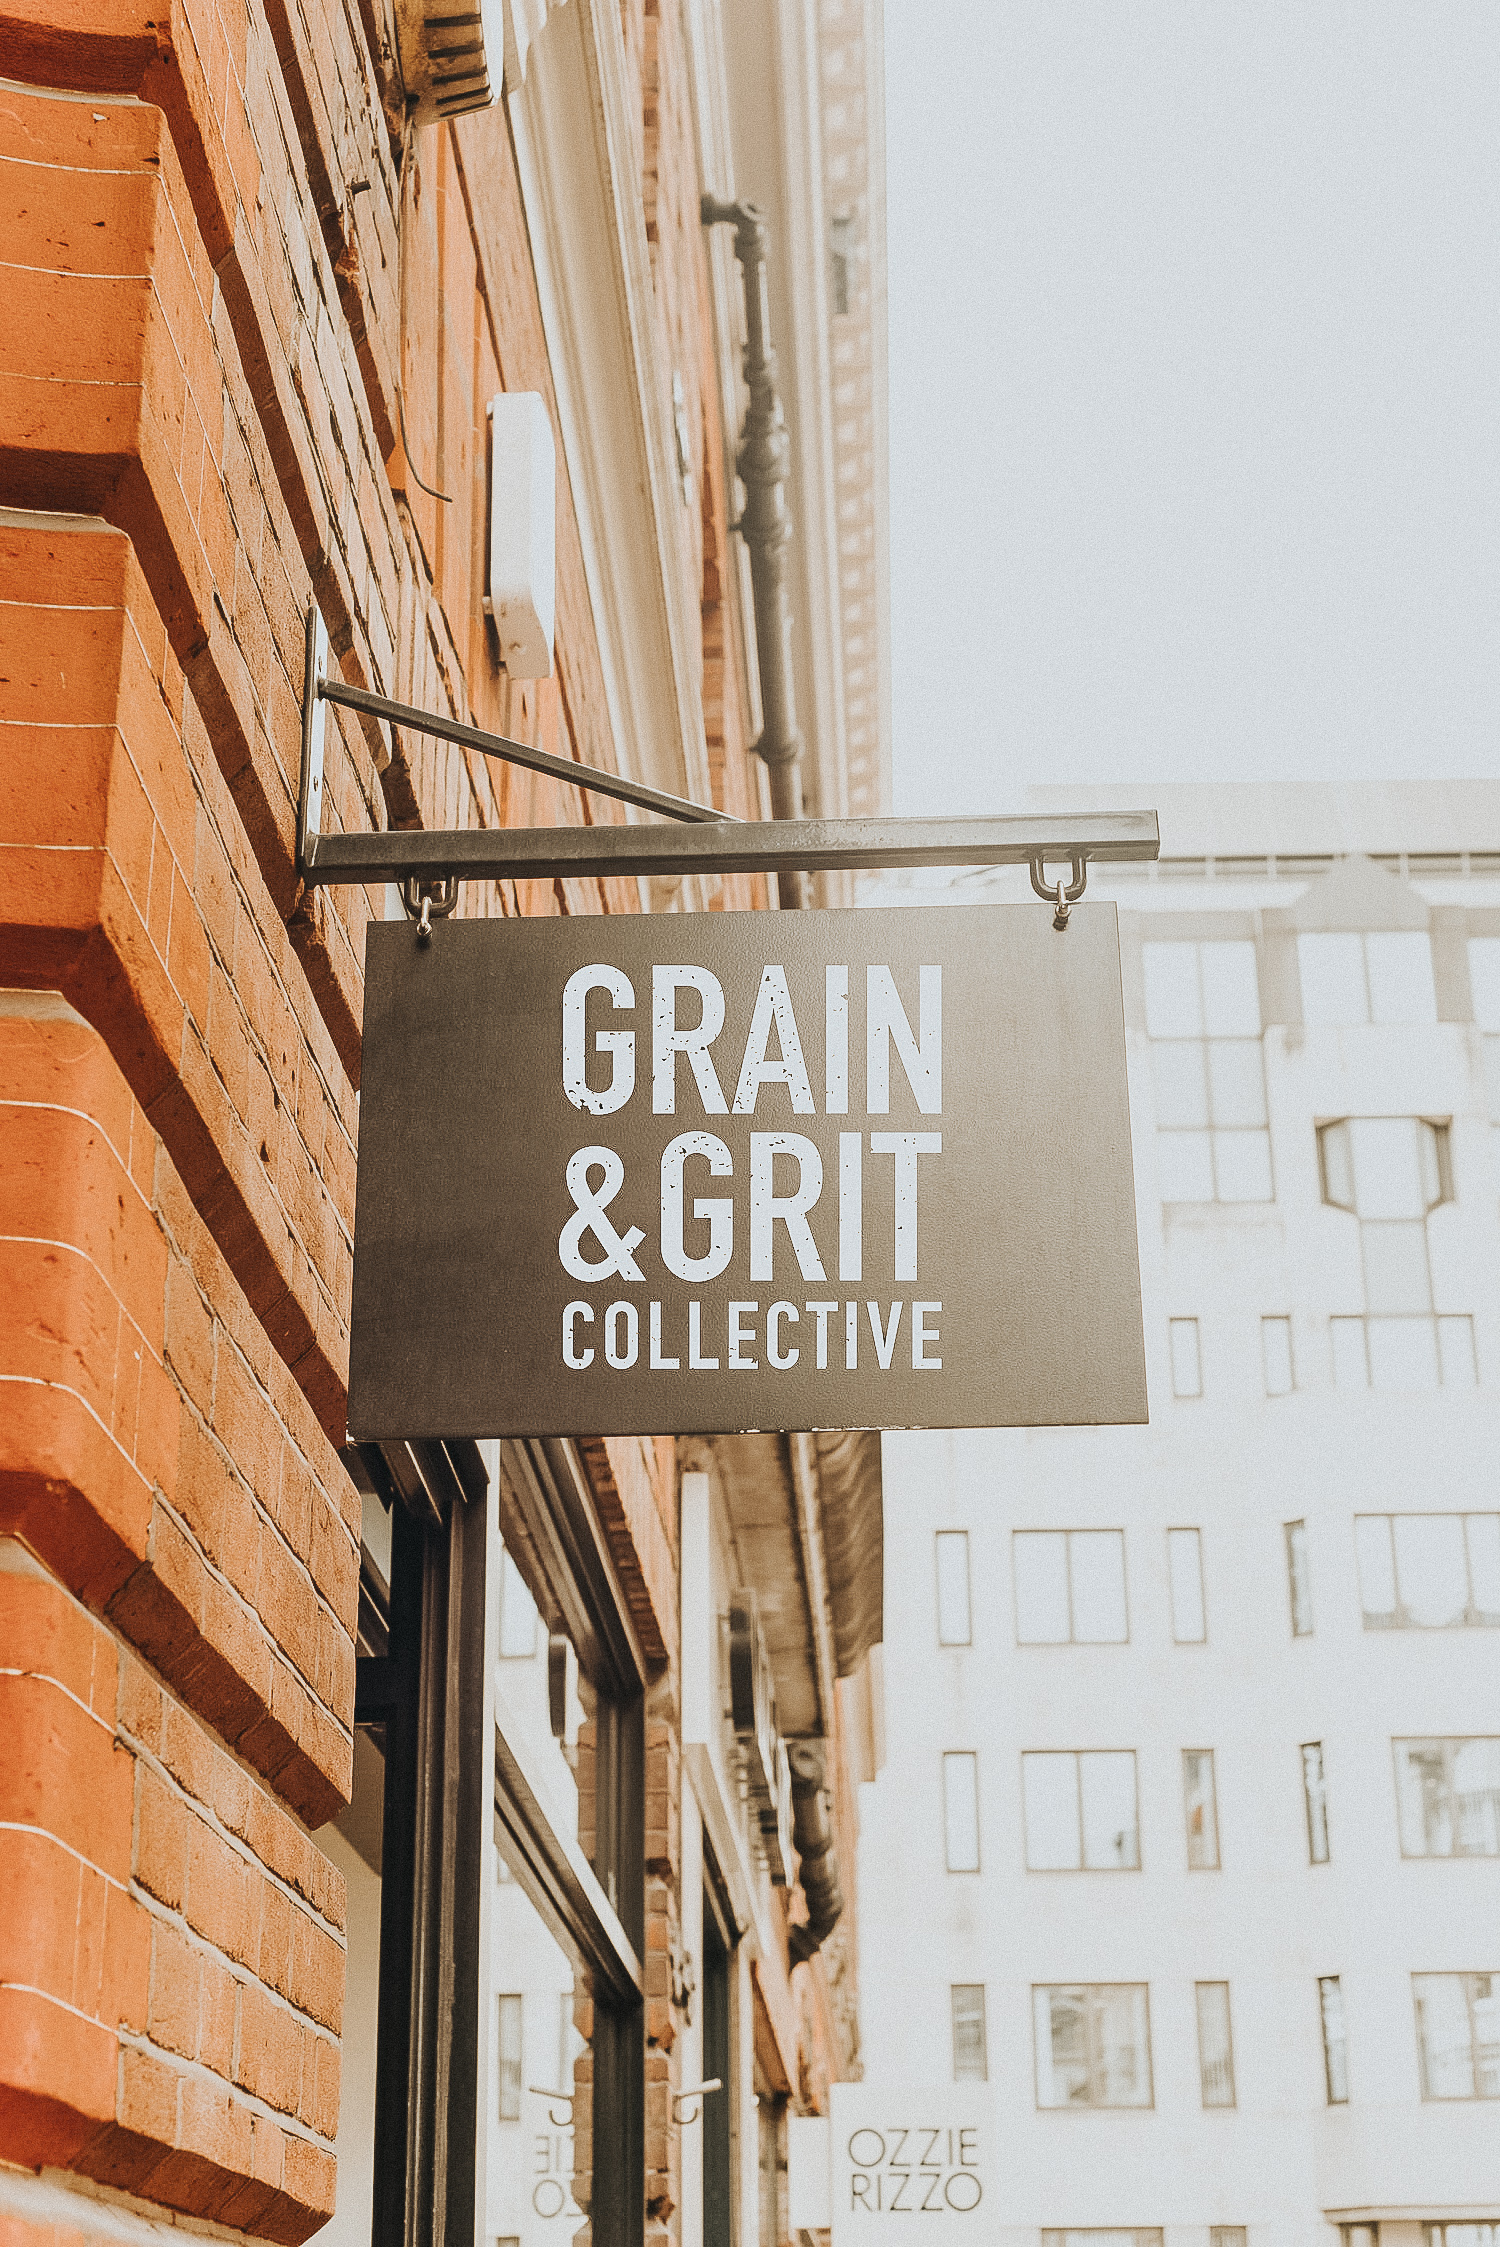 Bold masculine stamp clean modern simple typographic black and white logo for Grain & Grit Collective Restaurant Group in San Diego designed by Gretchen Kamp. Displayed on signage on a brick building. To view the full branding project, click here: http://www.gretchenkamp.com/grain-grit